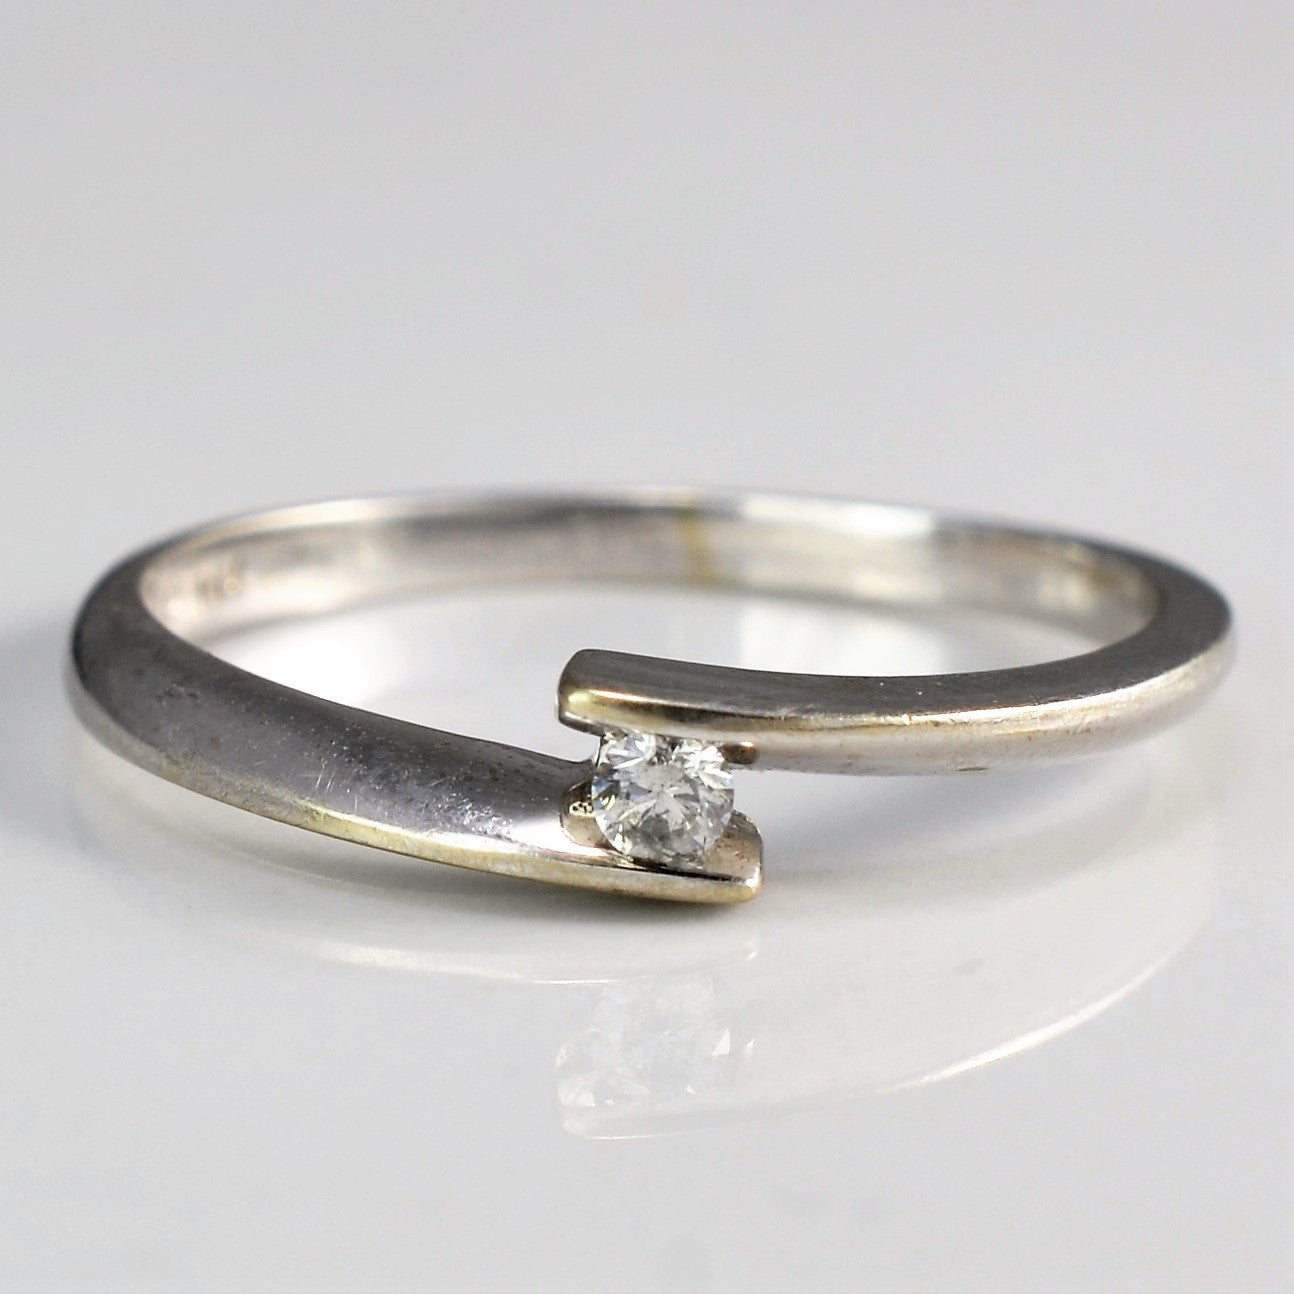 Tension Set Bypass Diamond Promise Ring | 0.06 ct, SZ 6.75 |